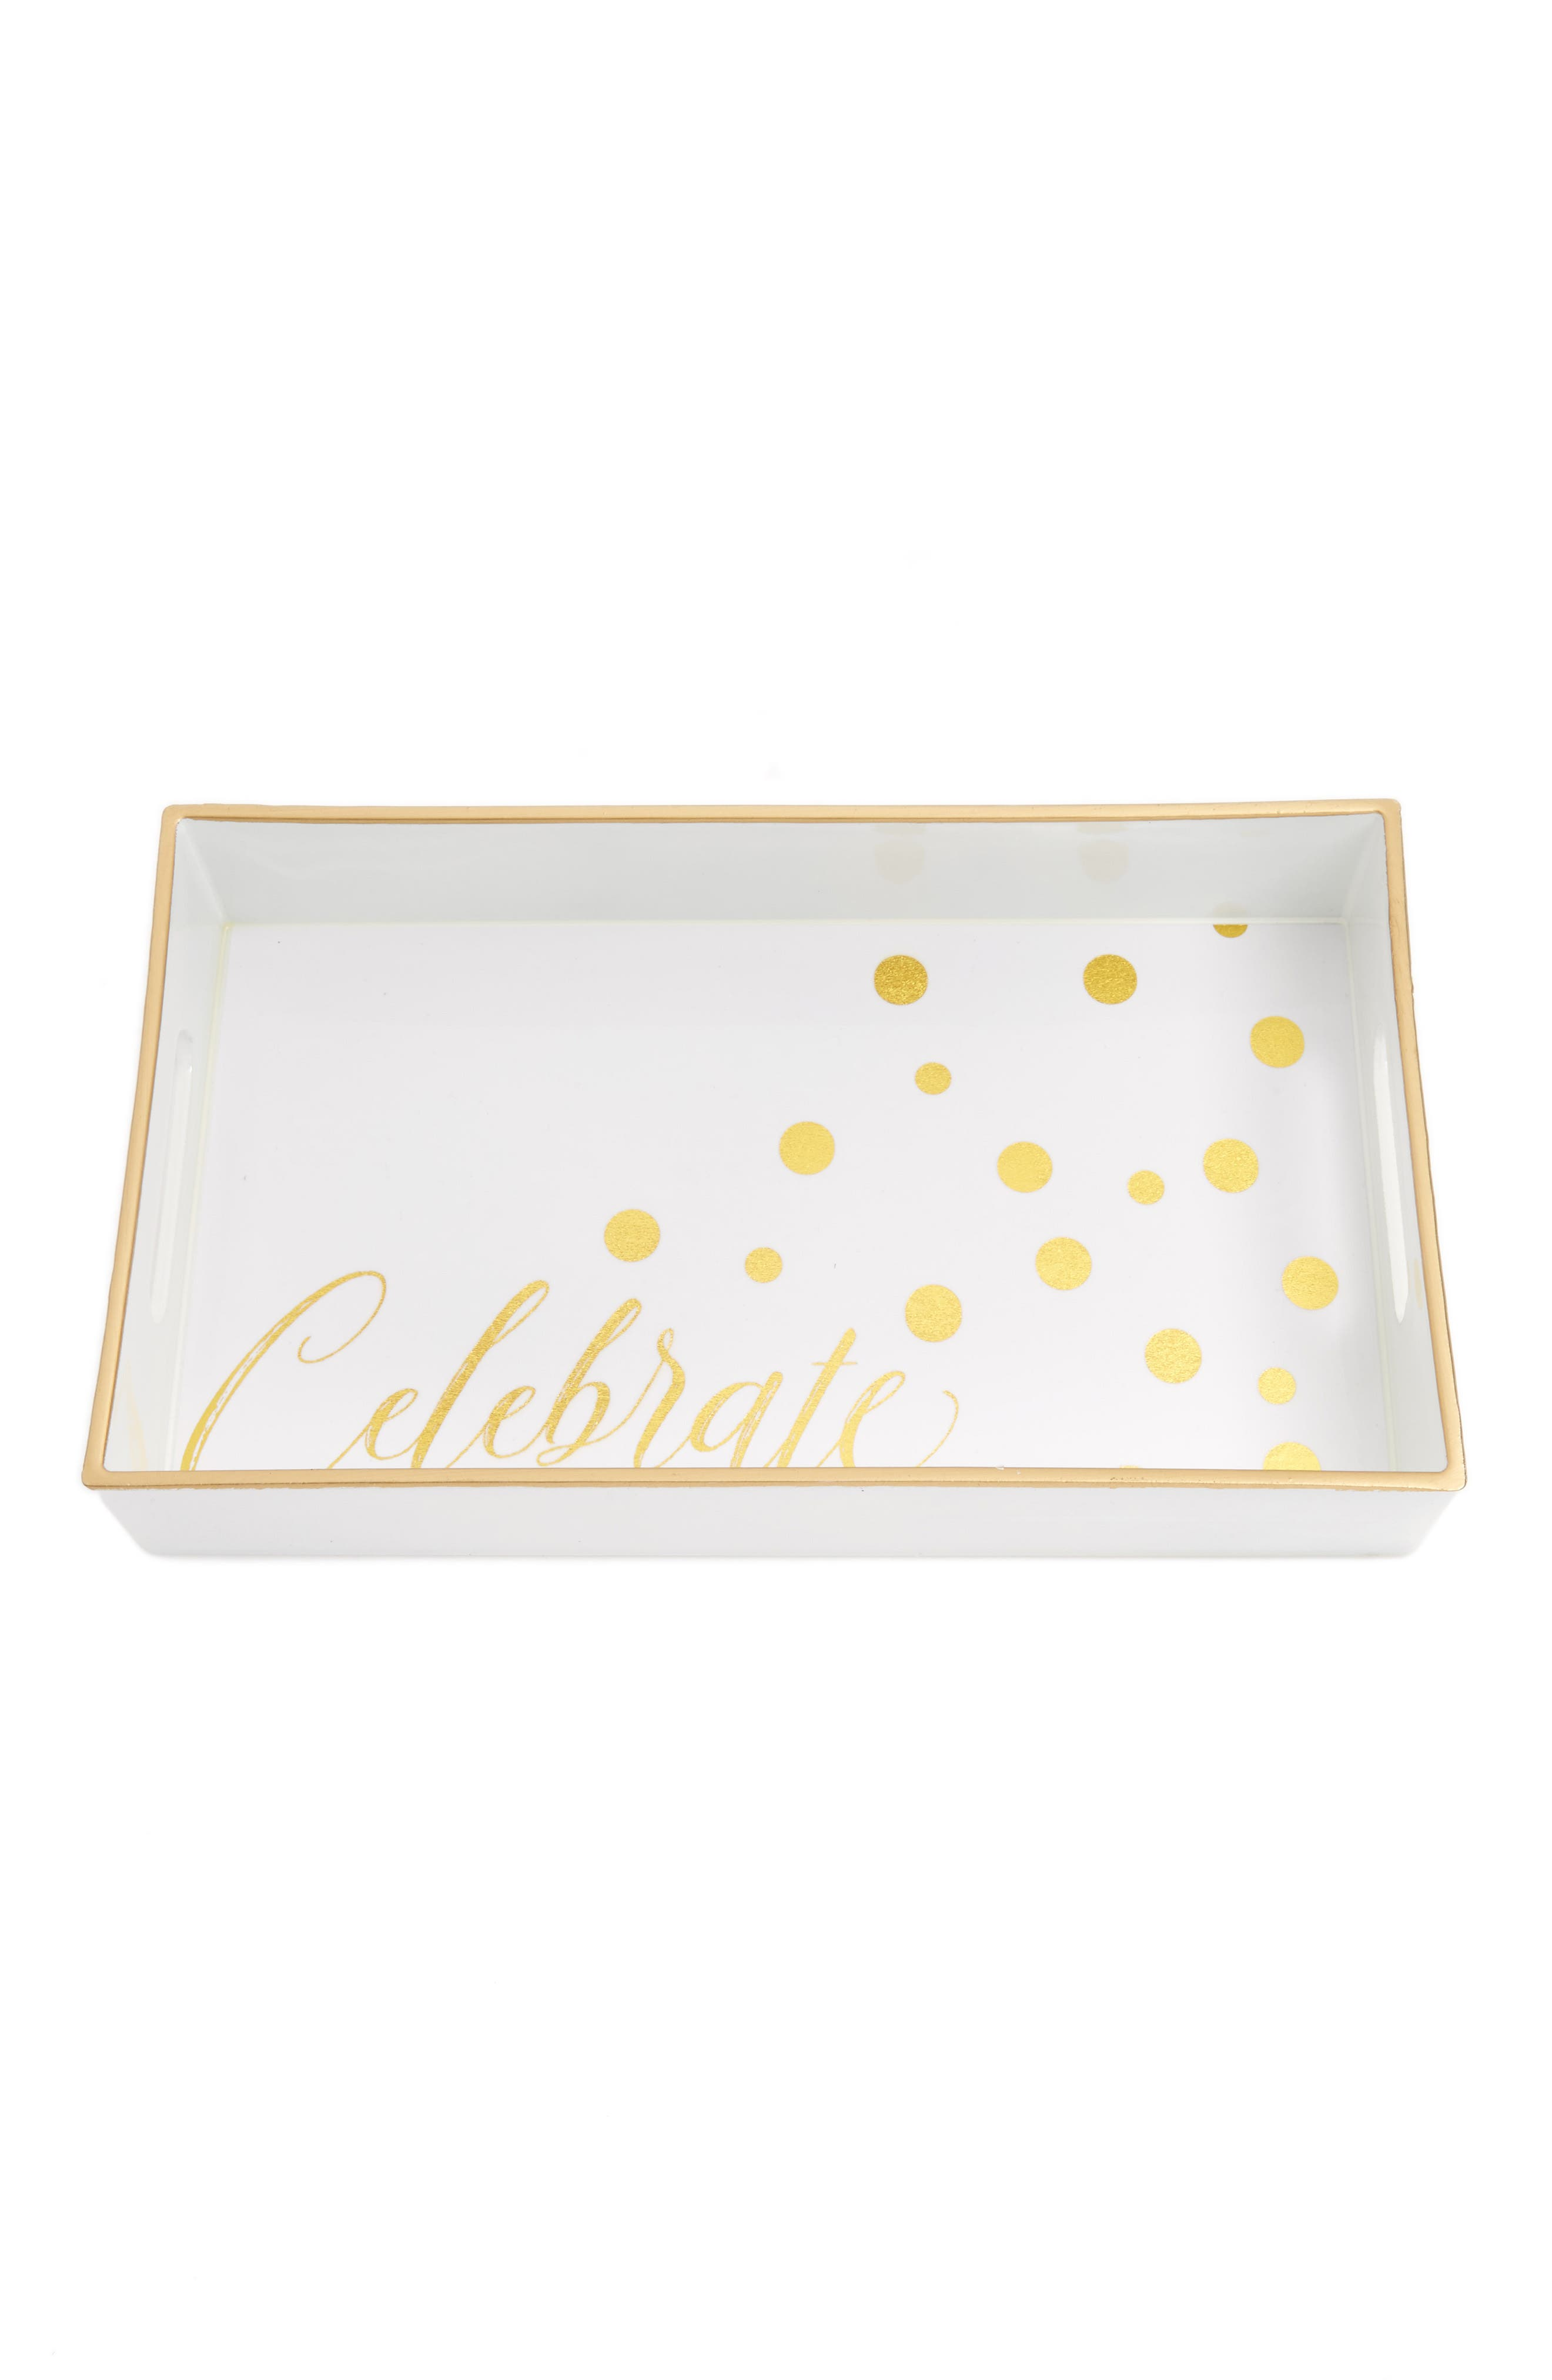 Alternate Image 2  - American Atelier Celebrate Tray